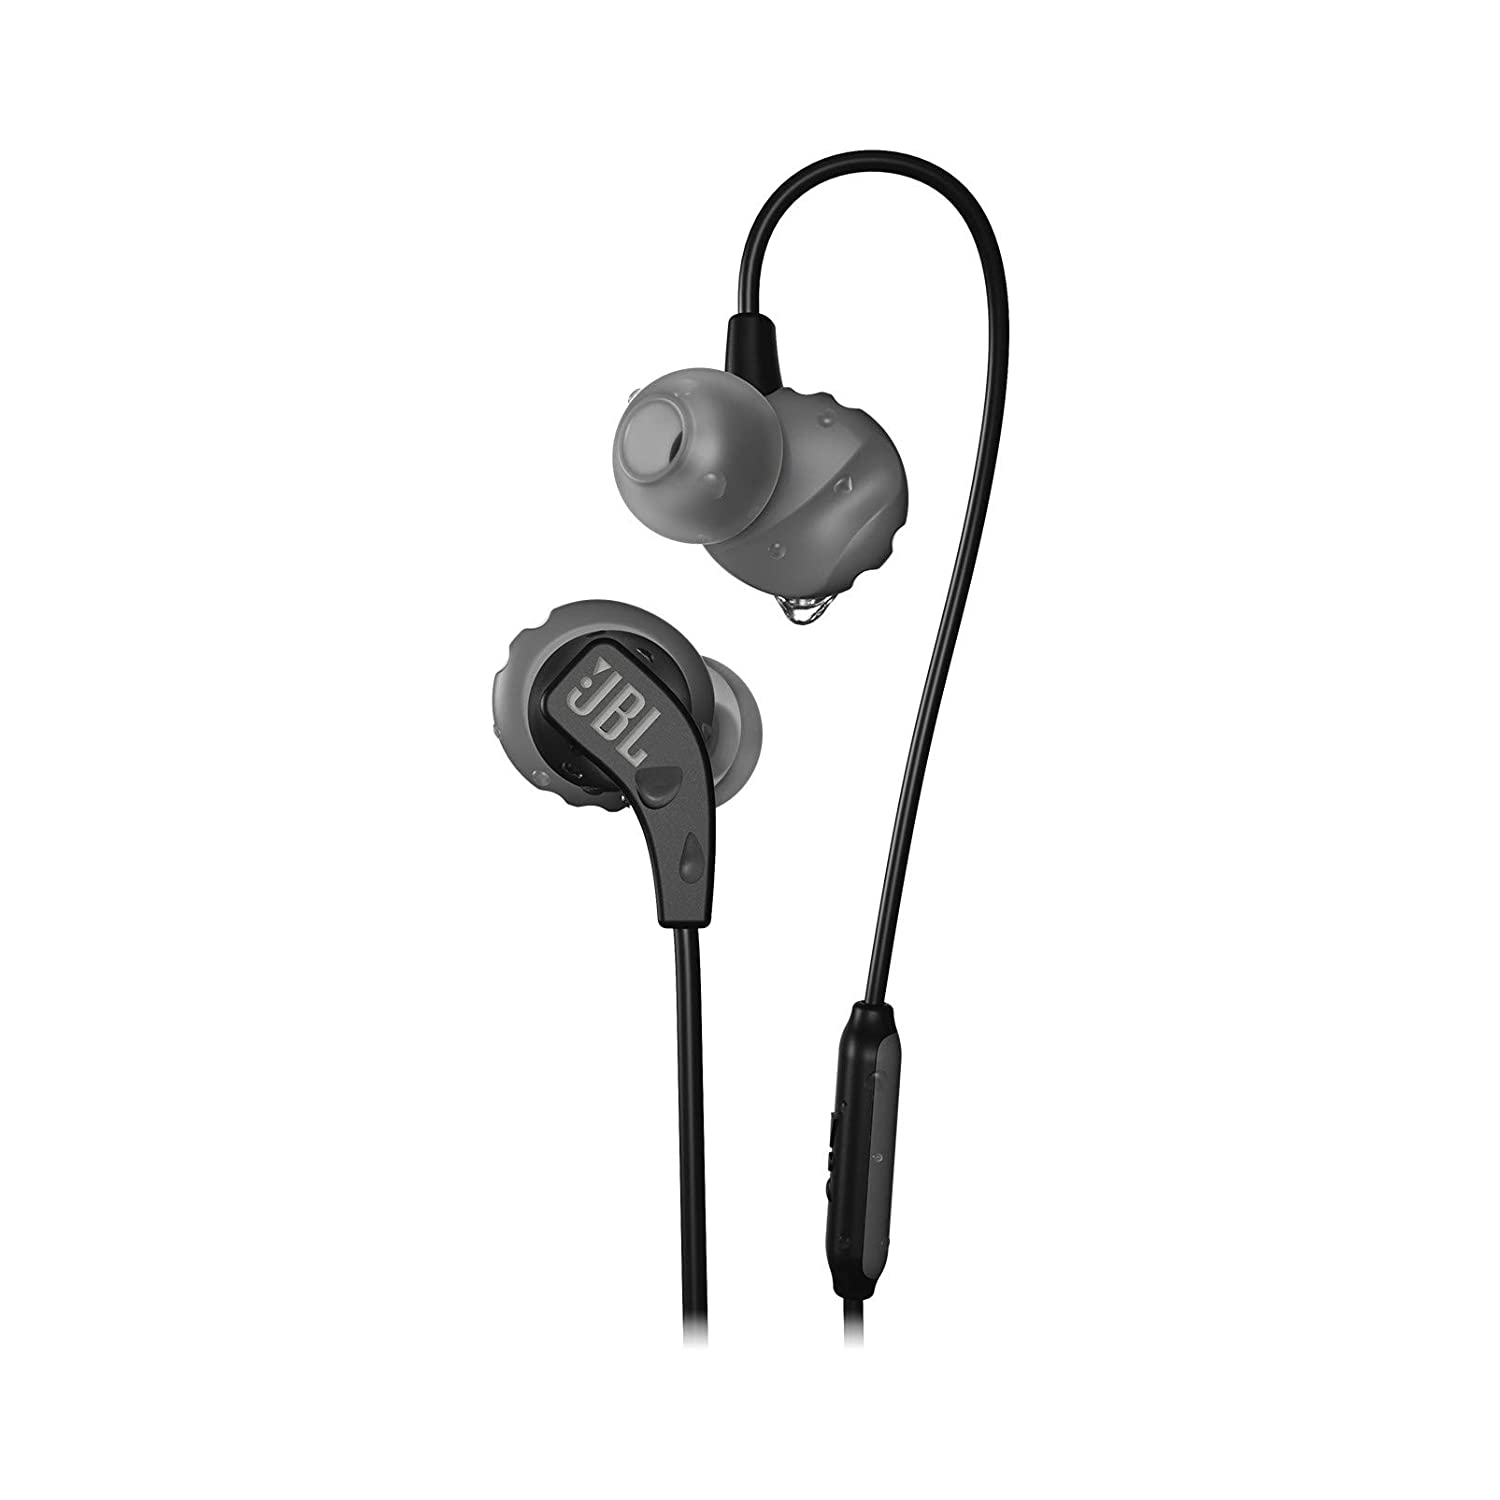 JBL Endurance RUN Sweatproof Sports In-Ear Headphones with One-Button Remote and Microphone Black